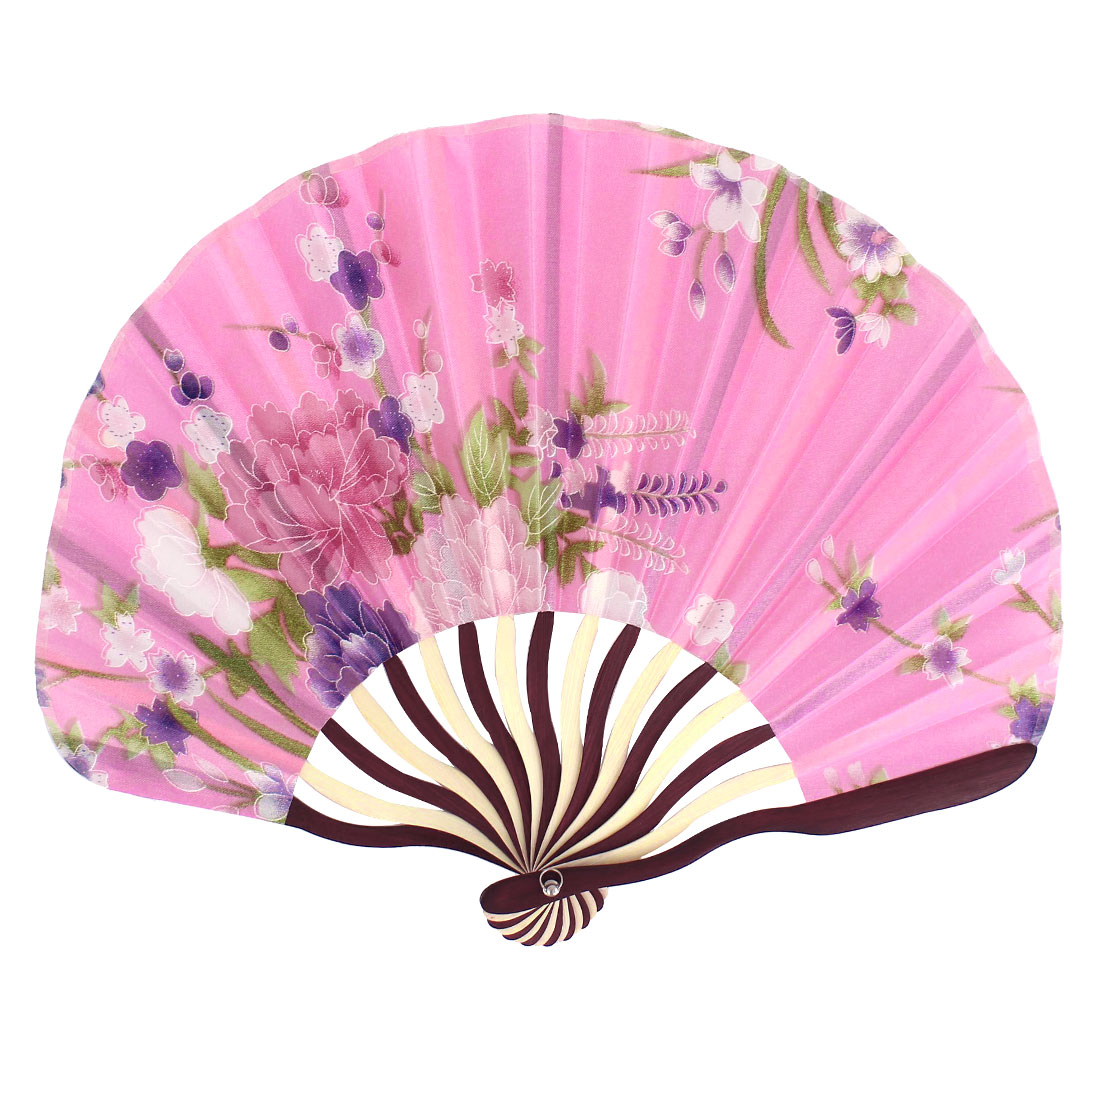 Wooden Ribs Flowers Printed Dance Wedding Party Folding Hand Fan Pink